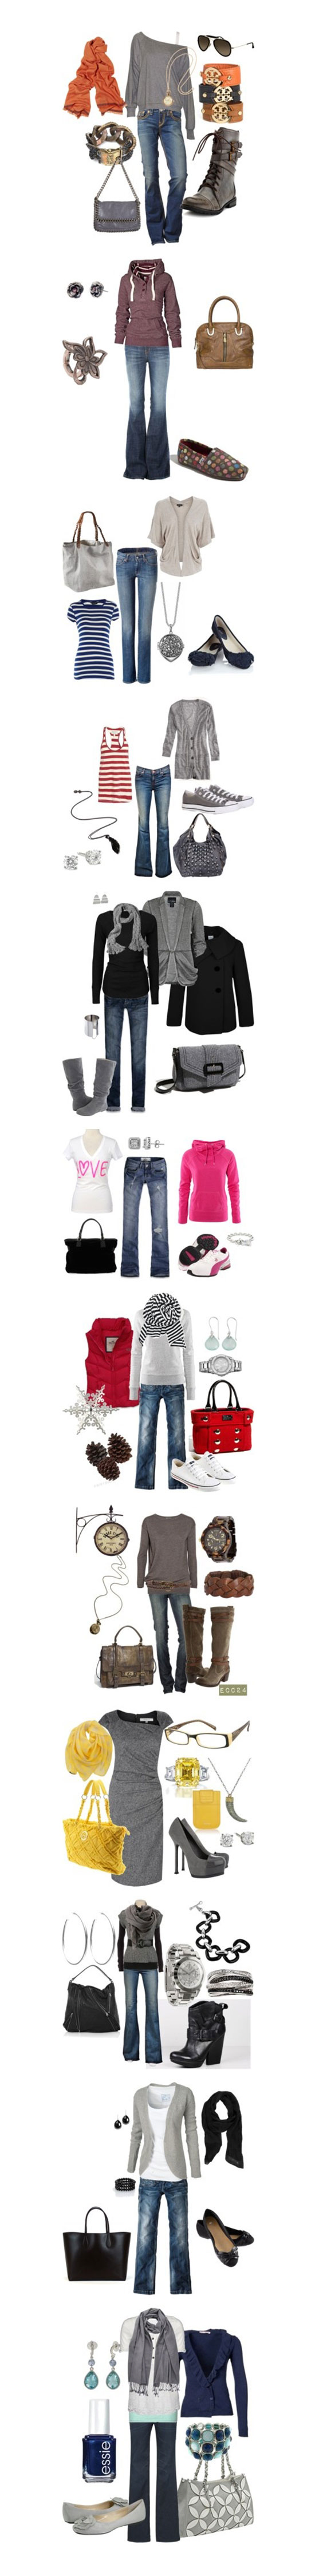 Latest Casual Winter Fashion Trends Ideas 2013 For Girls Women 1 Latest Casual Winter Fashion Trends & Ideas 2013 For Girls & Women